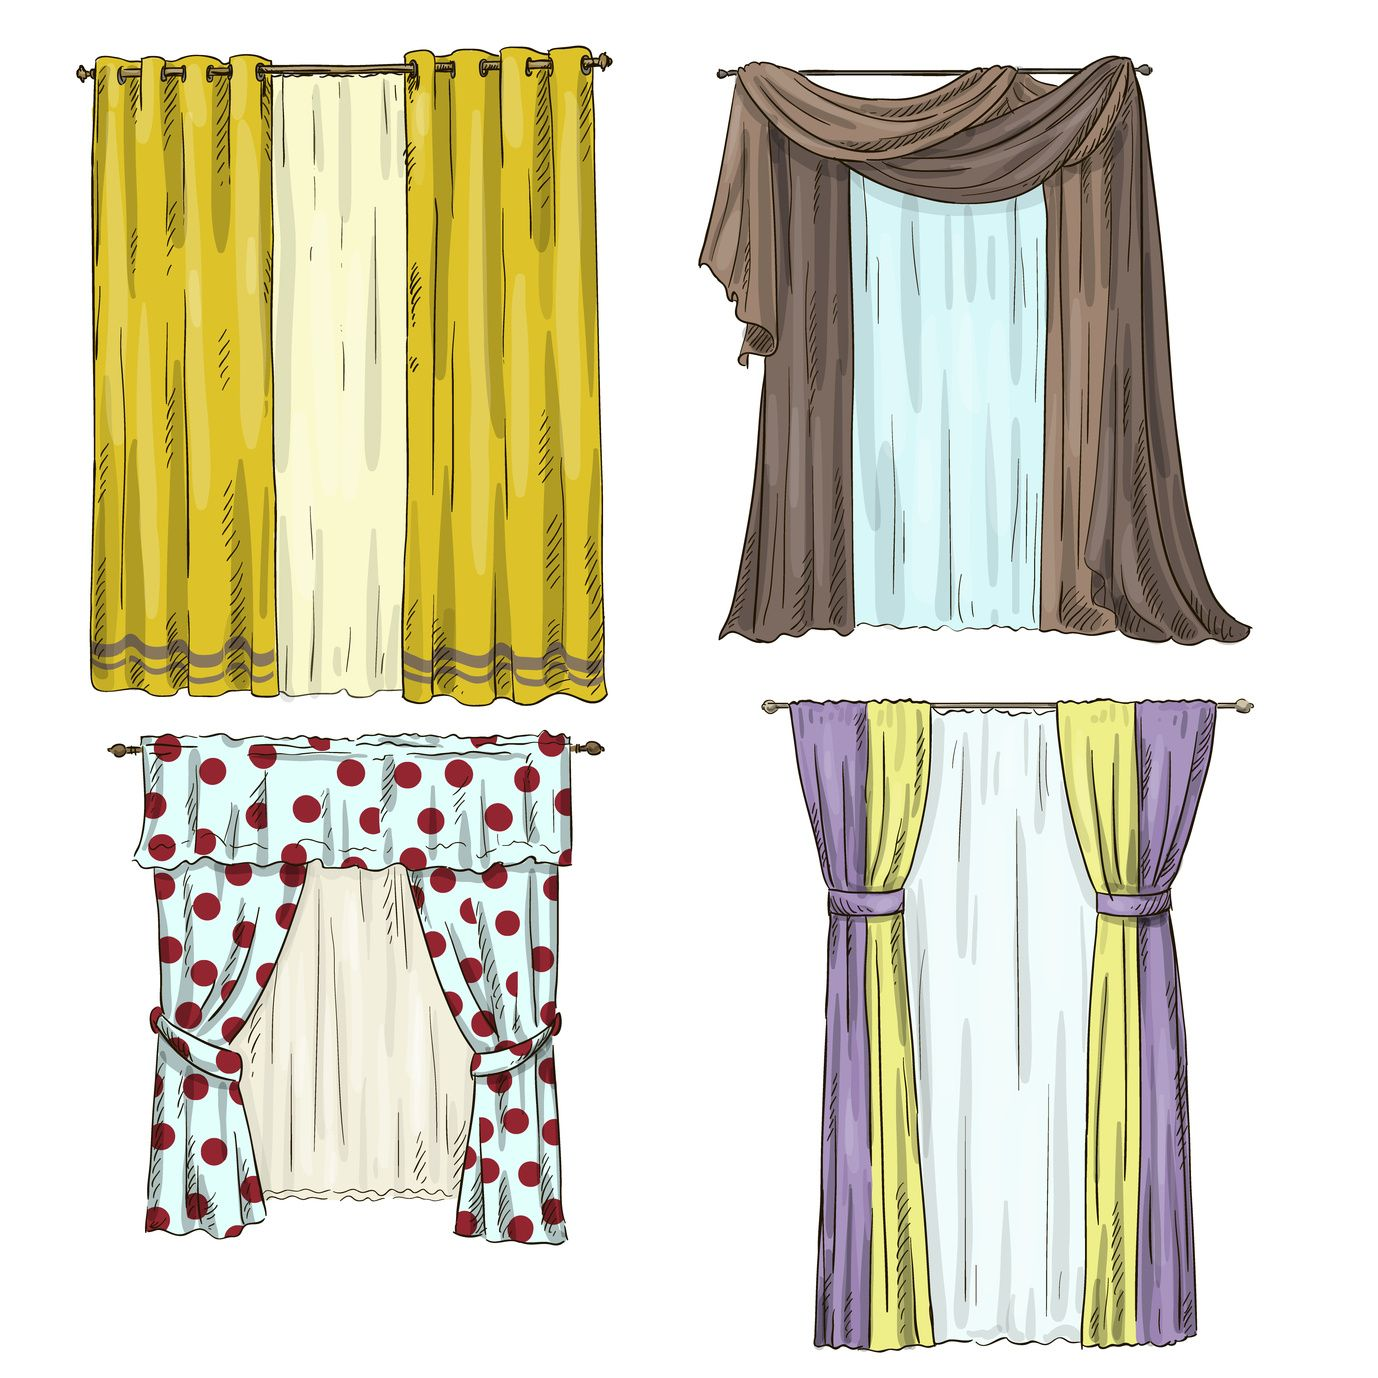 sheer casement curtain sketch - Google Search | DRAPERY ... for Window With Curtains Illustration  131fsj